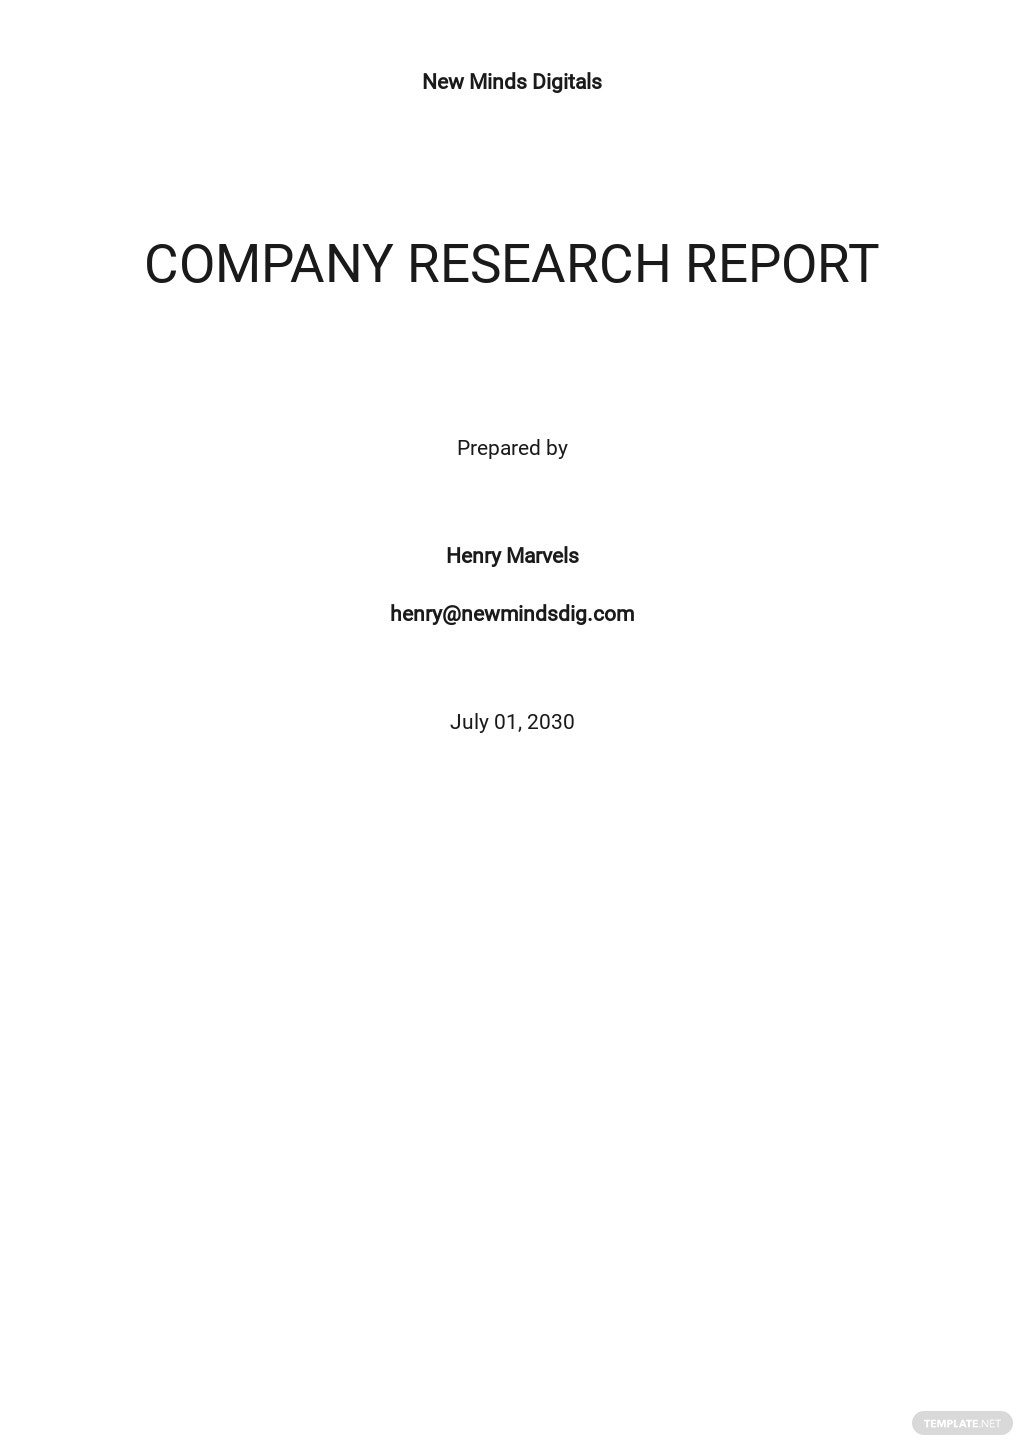 Company Research Report Template